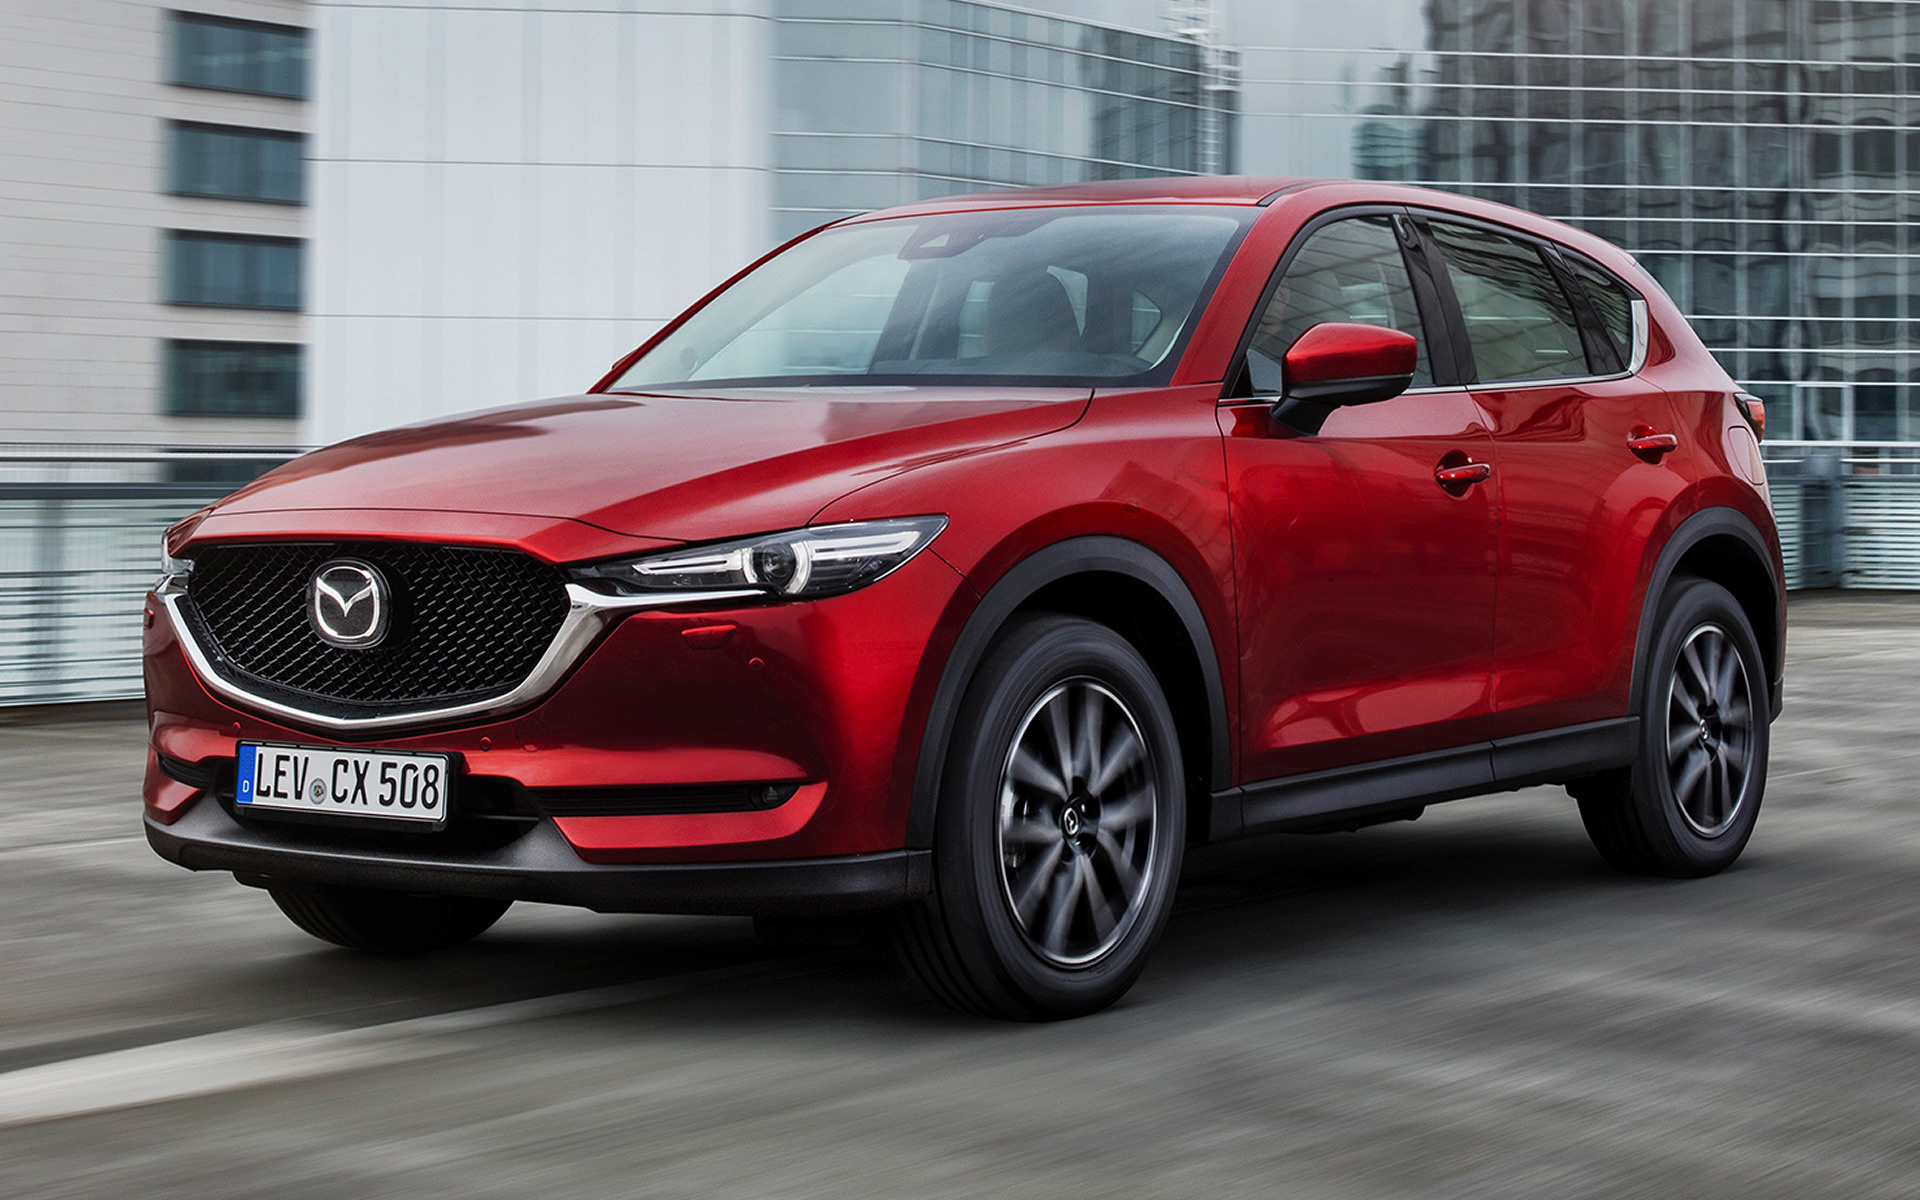 1920x1200 - Mazda CX-5 Wallpapers 11